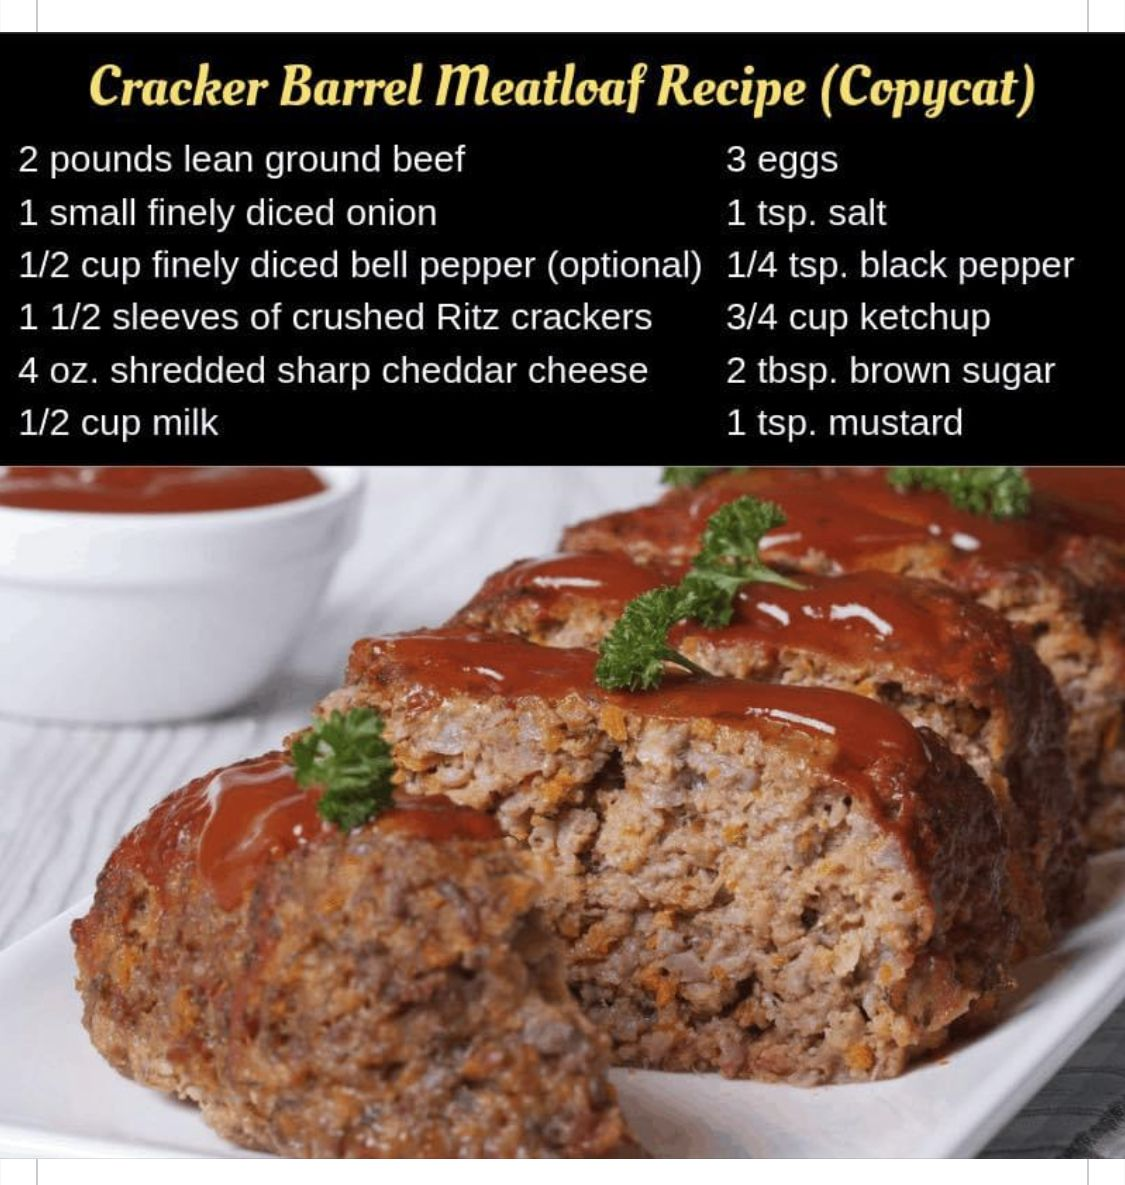 Pin By Amanda Winchester On Eat N Enjoy In 2020 Cracker Barrel Meatloaf Recipe Cracker Barrel Meatloaf Meatloaf Recipes